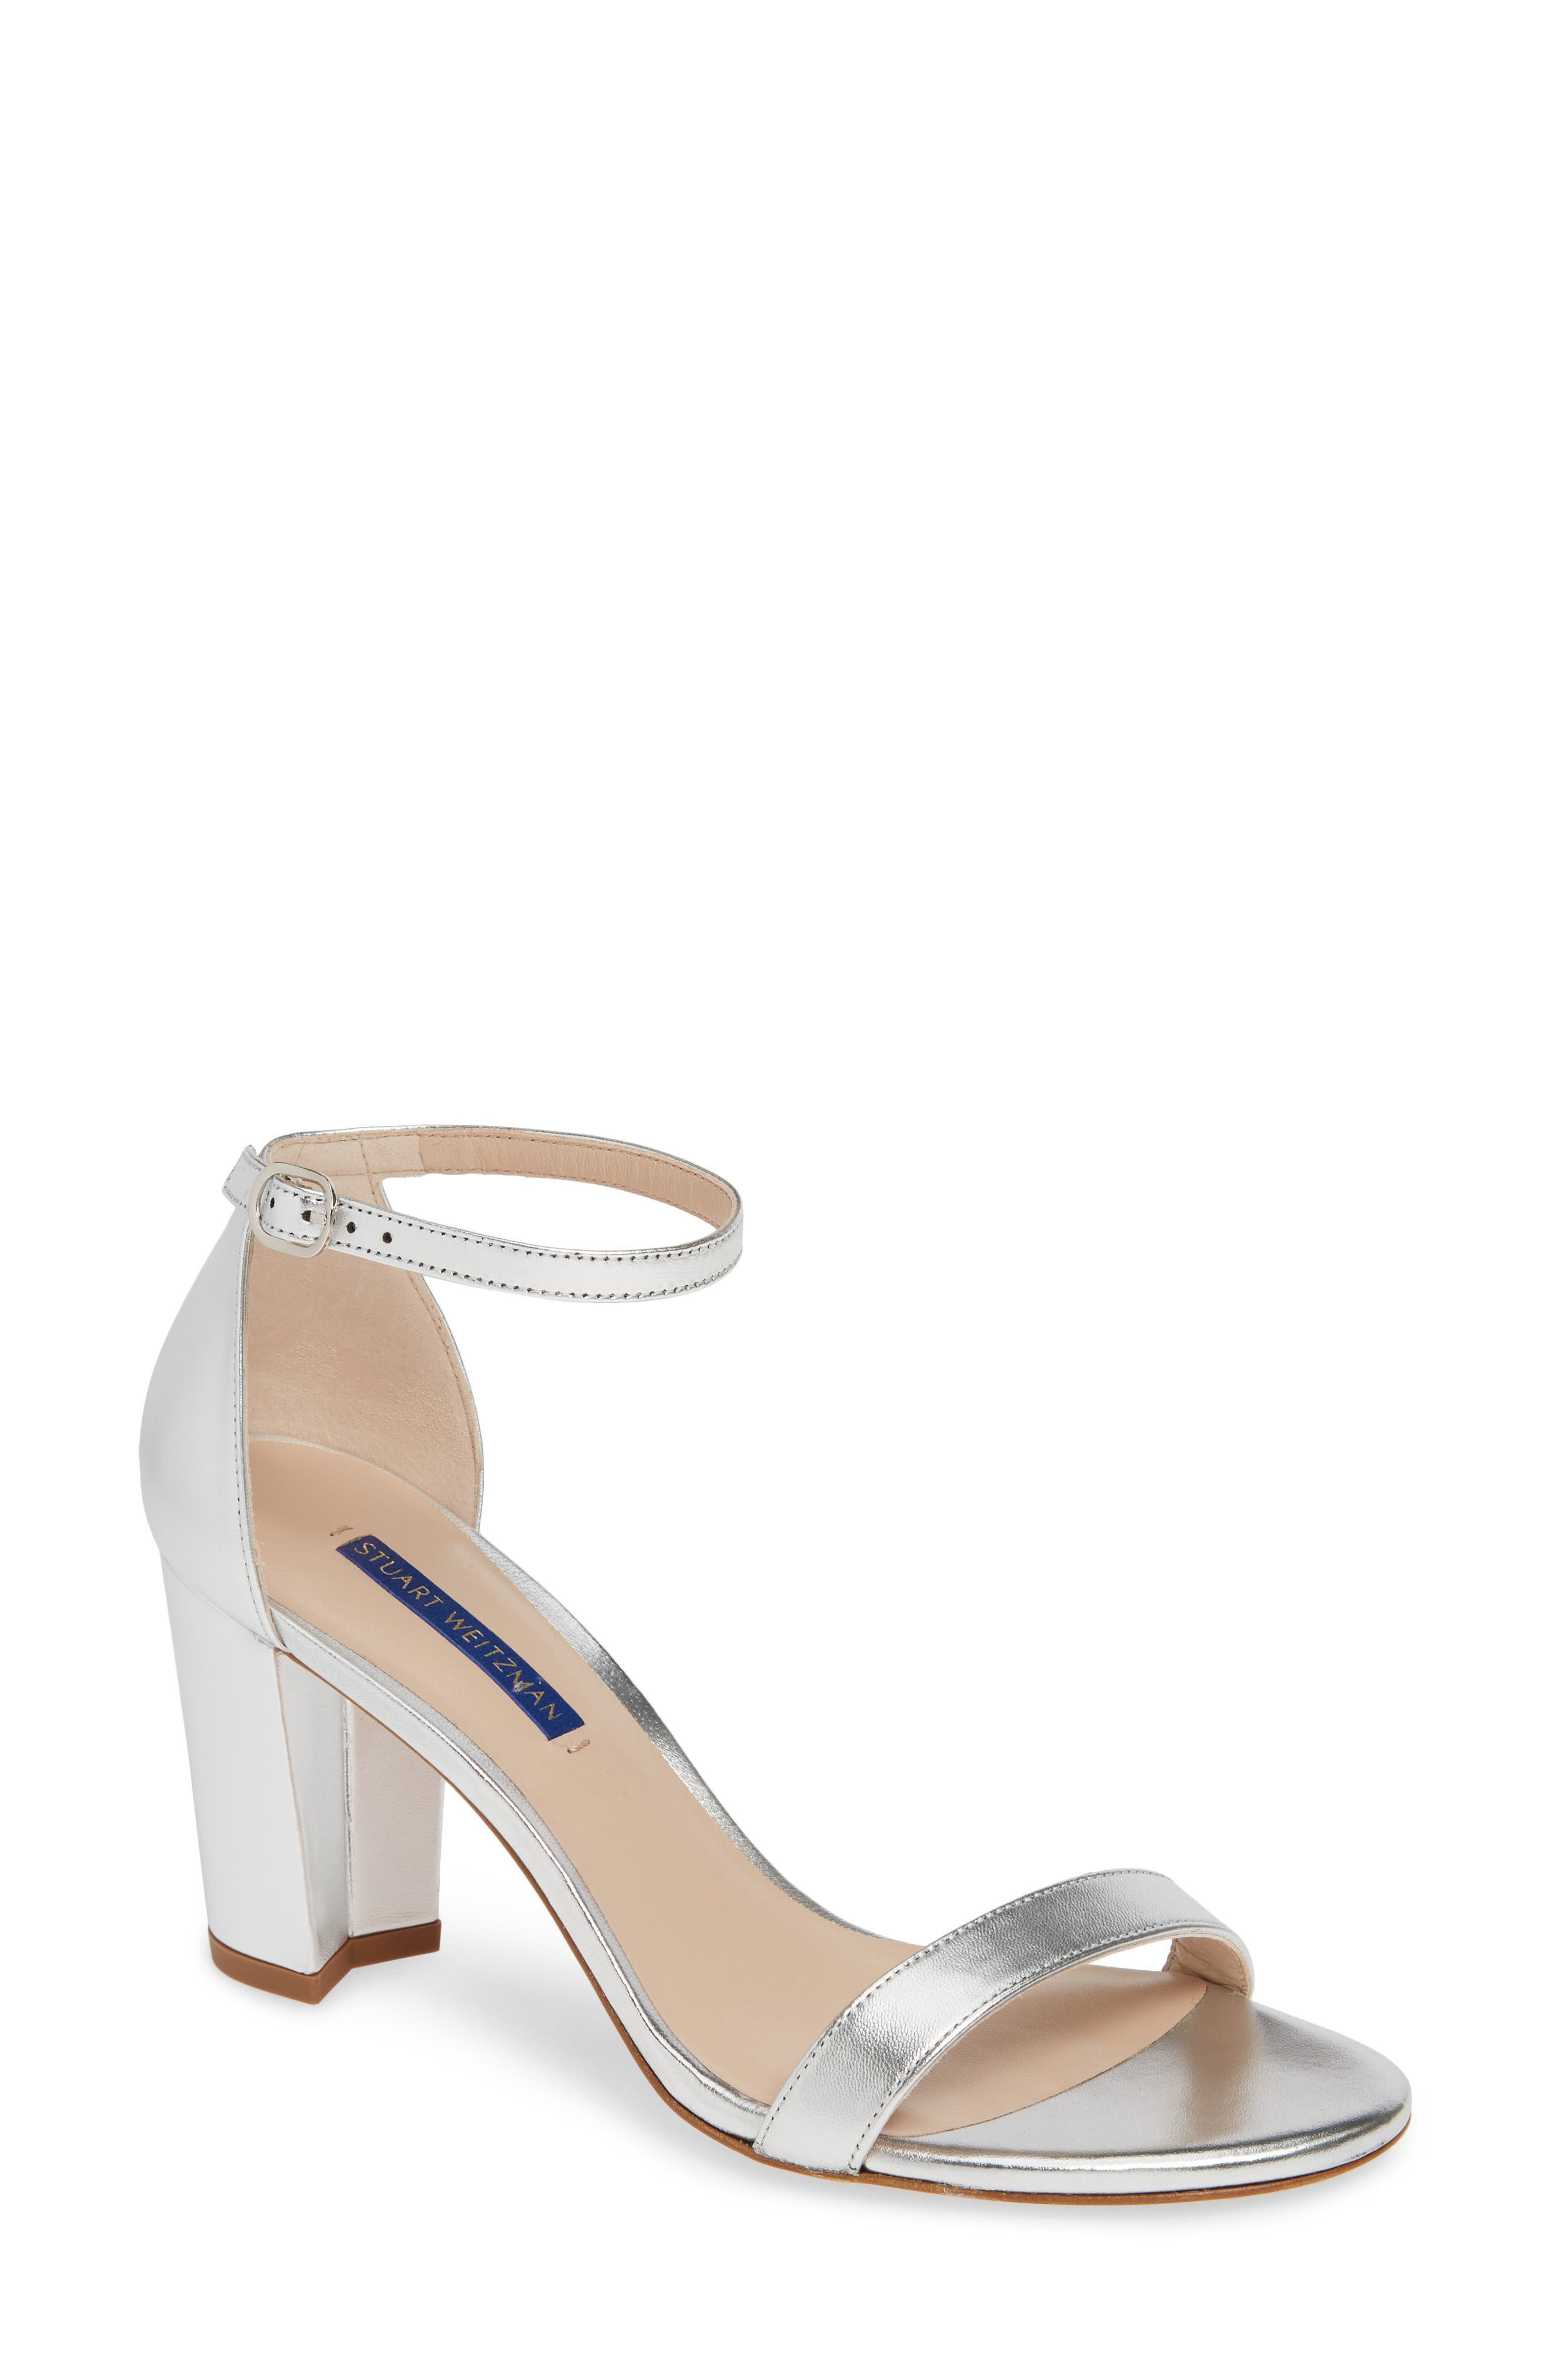 Stuart Weitzman Nearlynude Ankle Strap Sandal, Grey